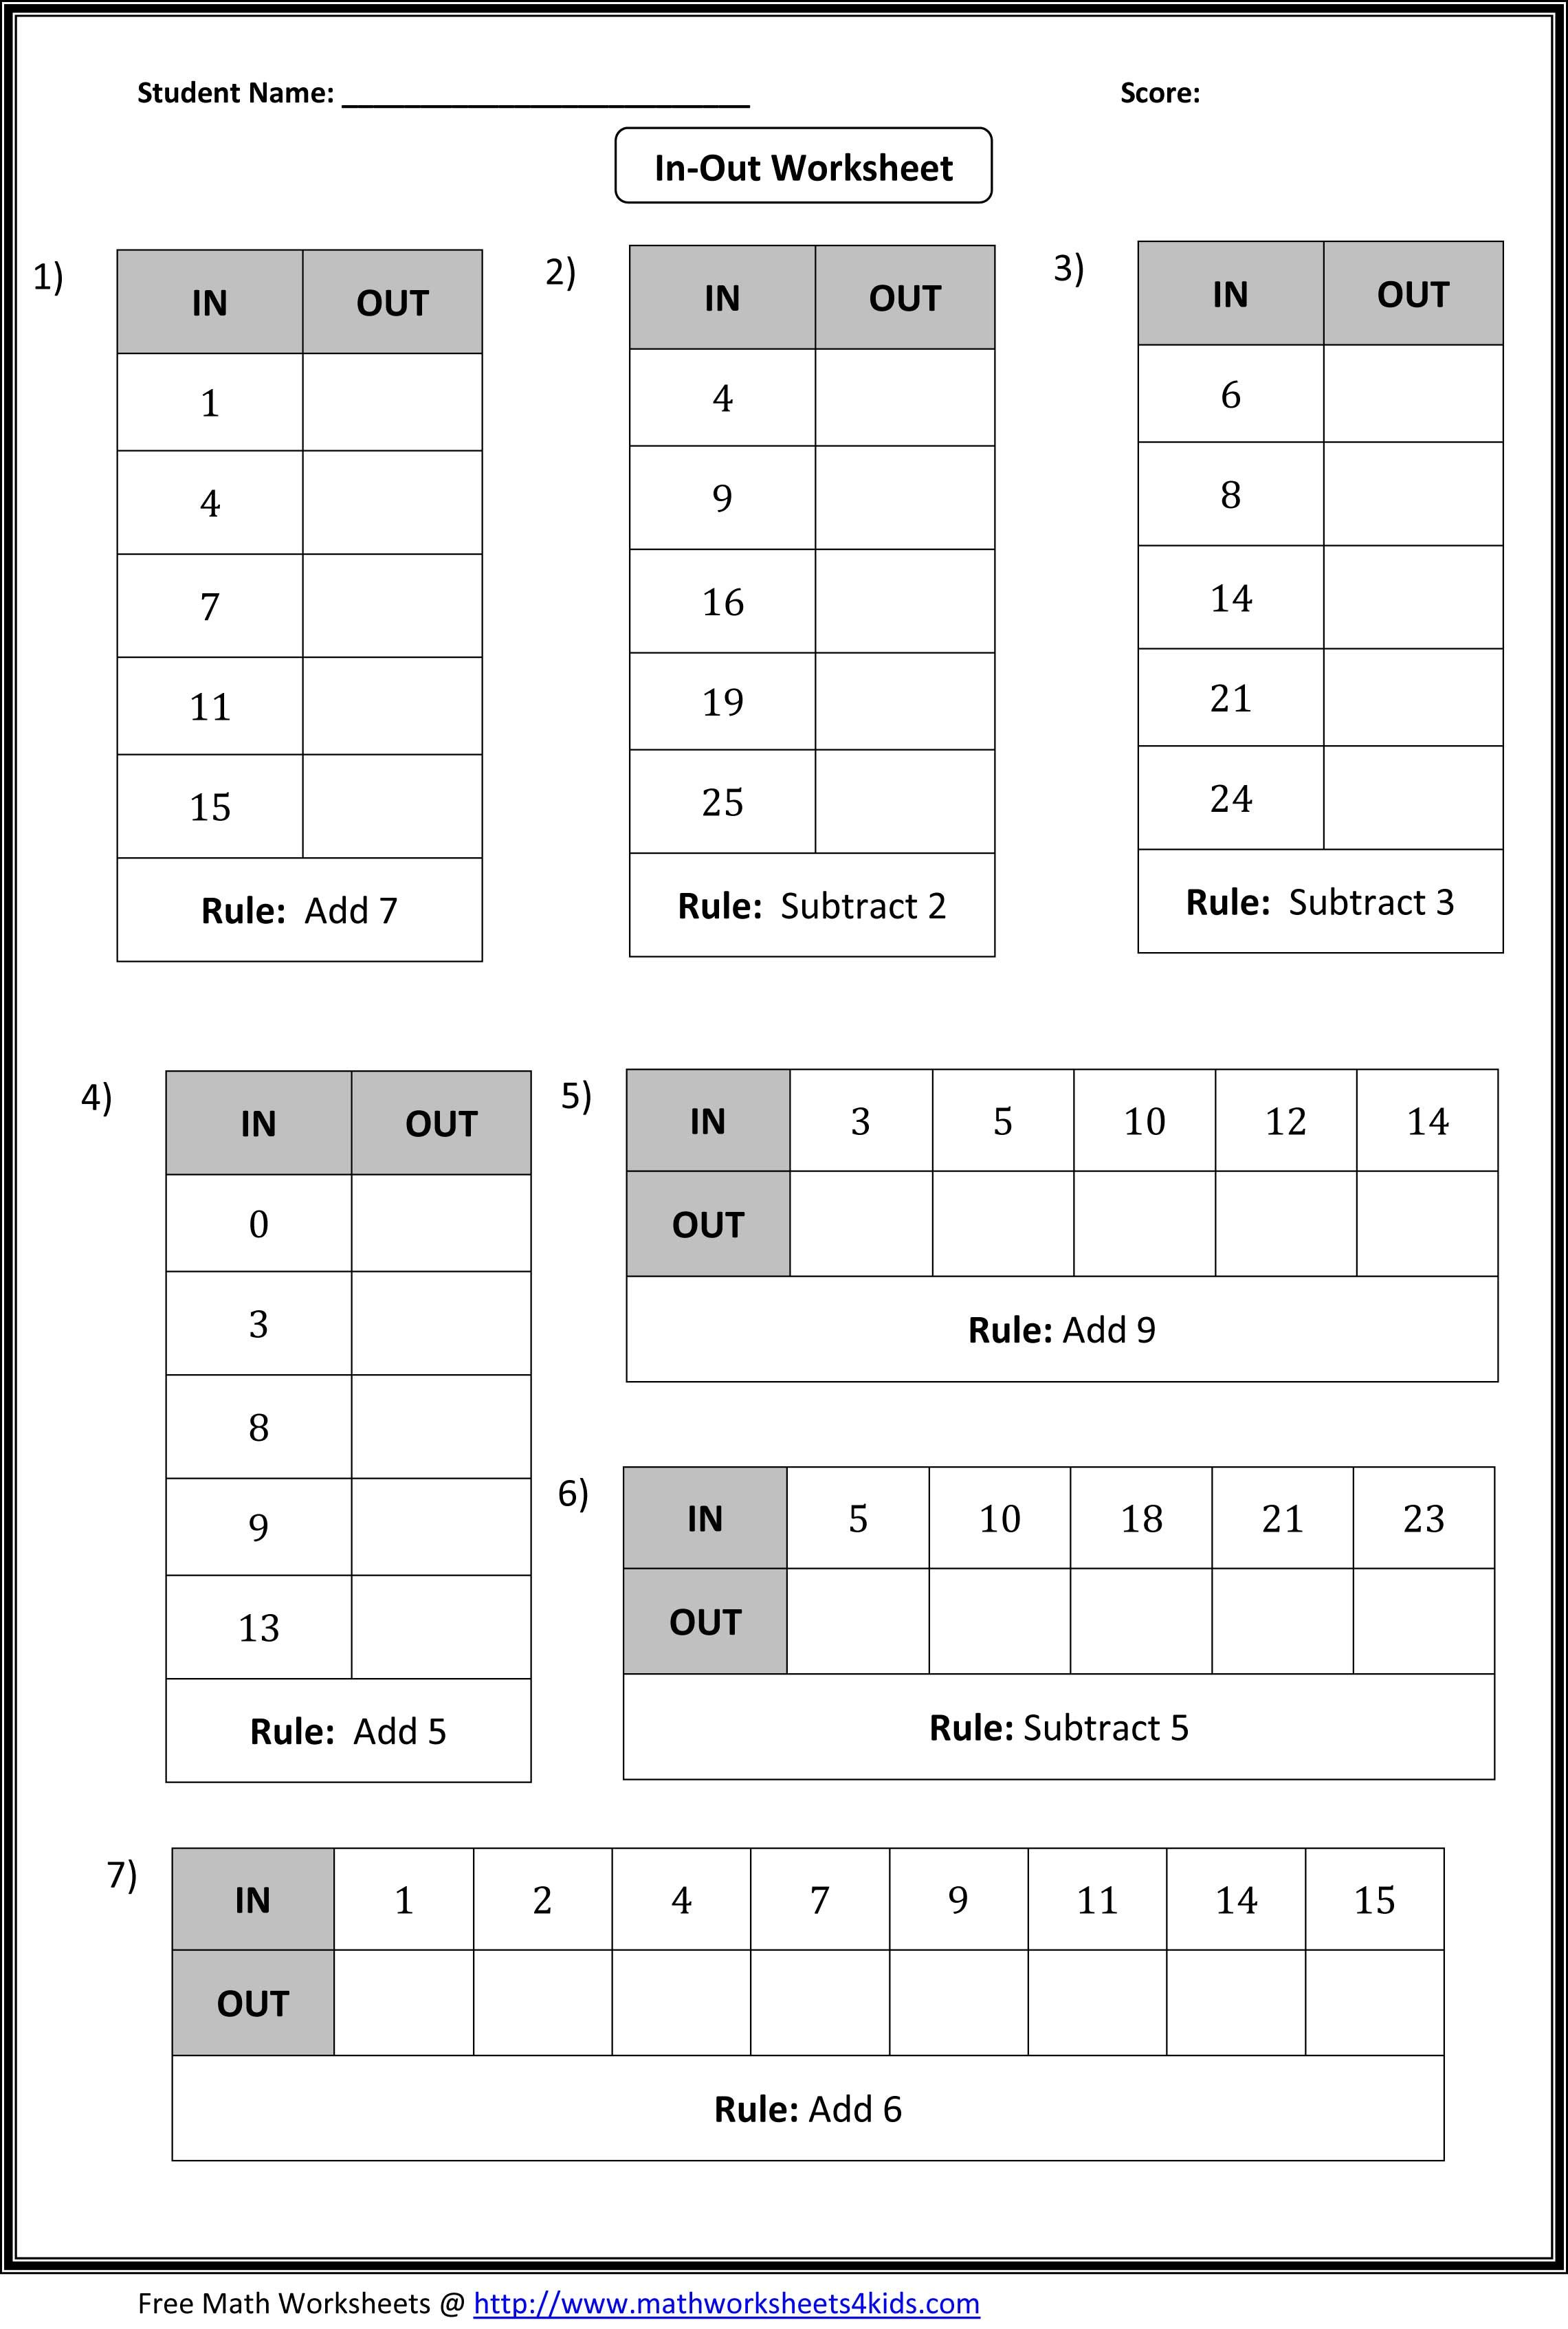 hight resolution of In and Out Worksheets   Printable math worksheets